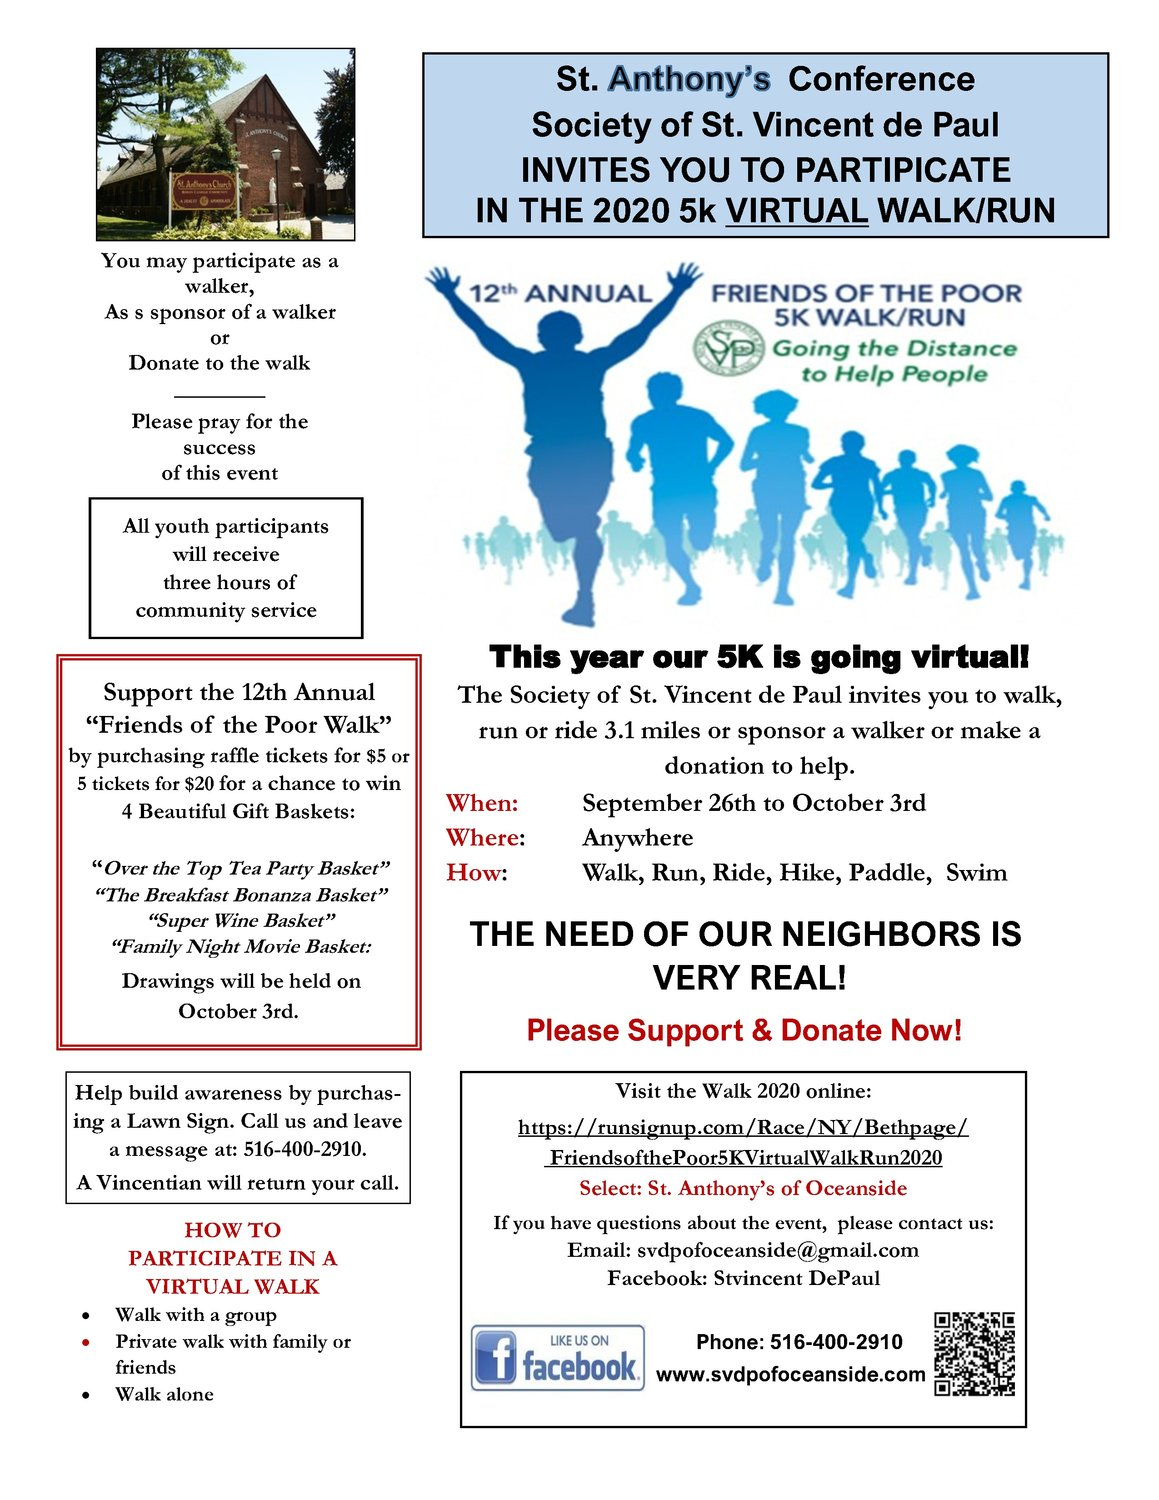 Scan the QR code in the bottom right corner of this flyer to register for the 5K.